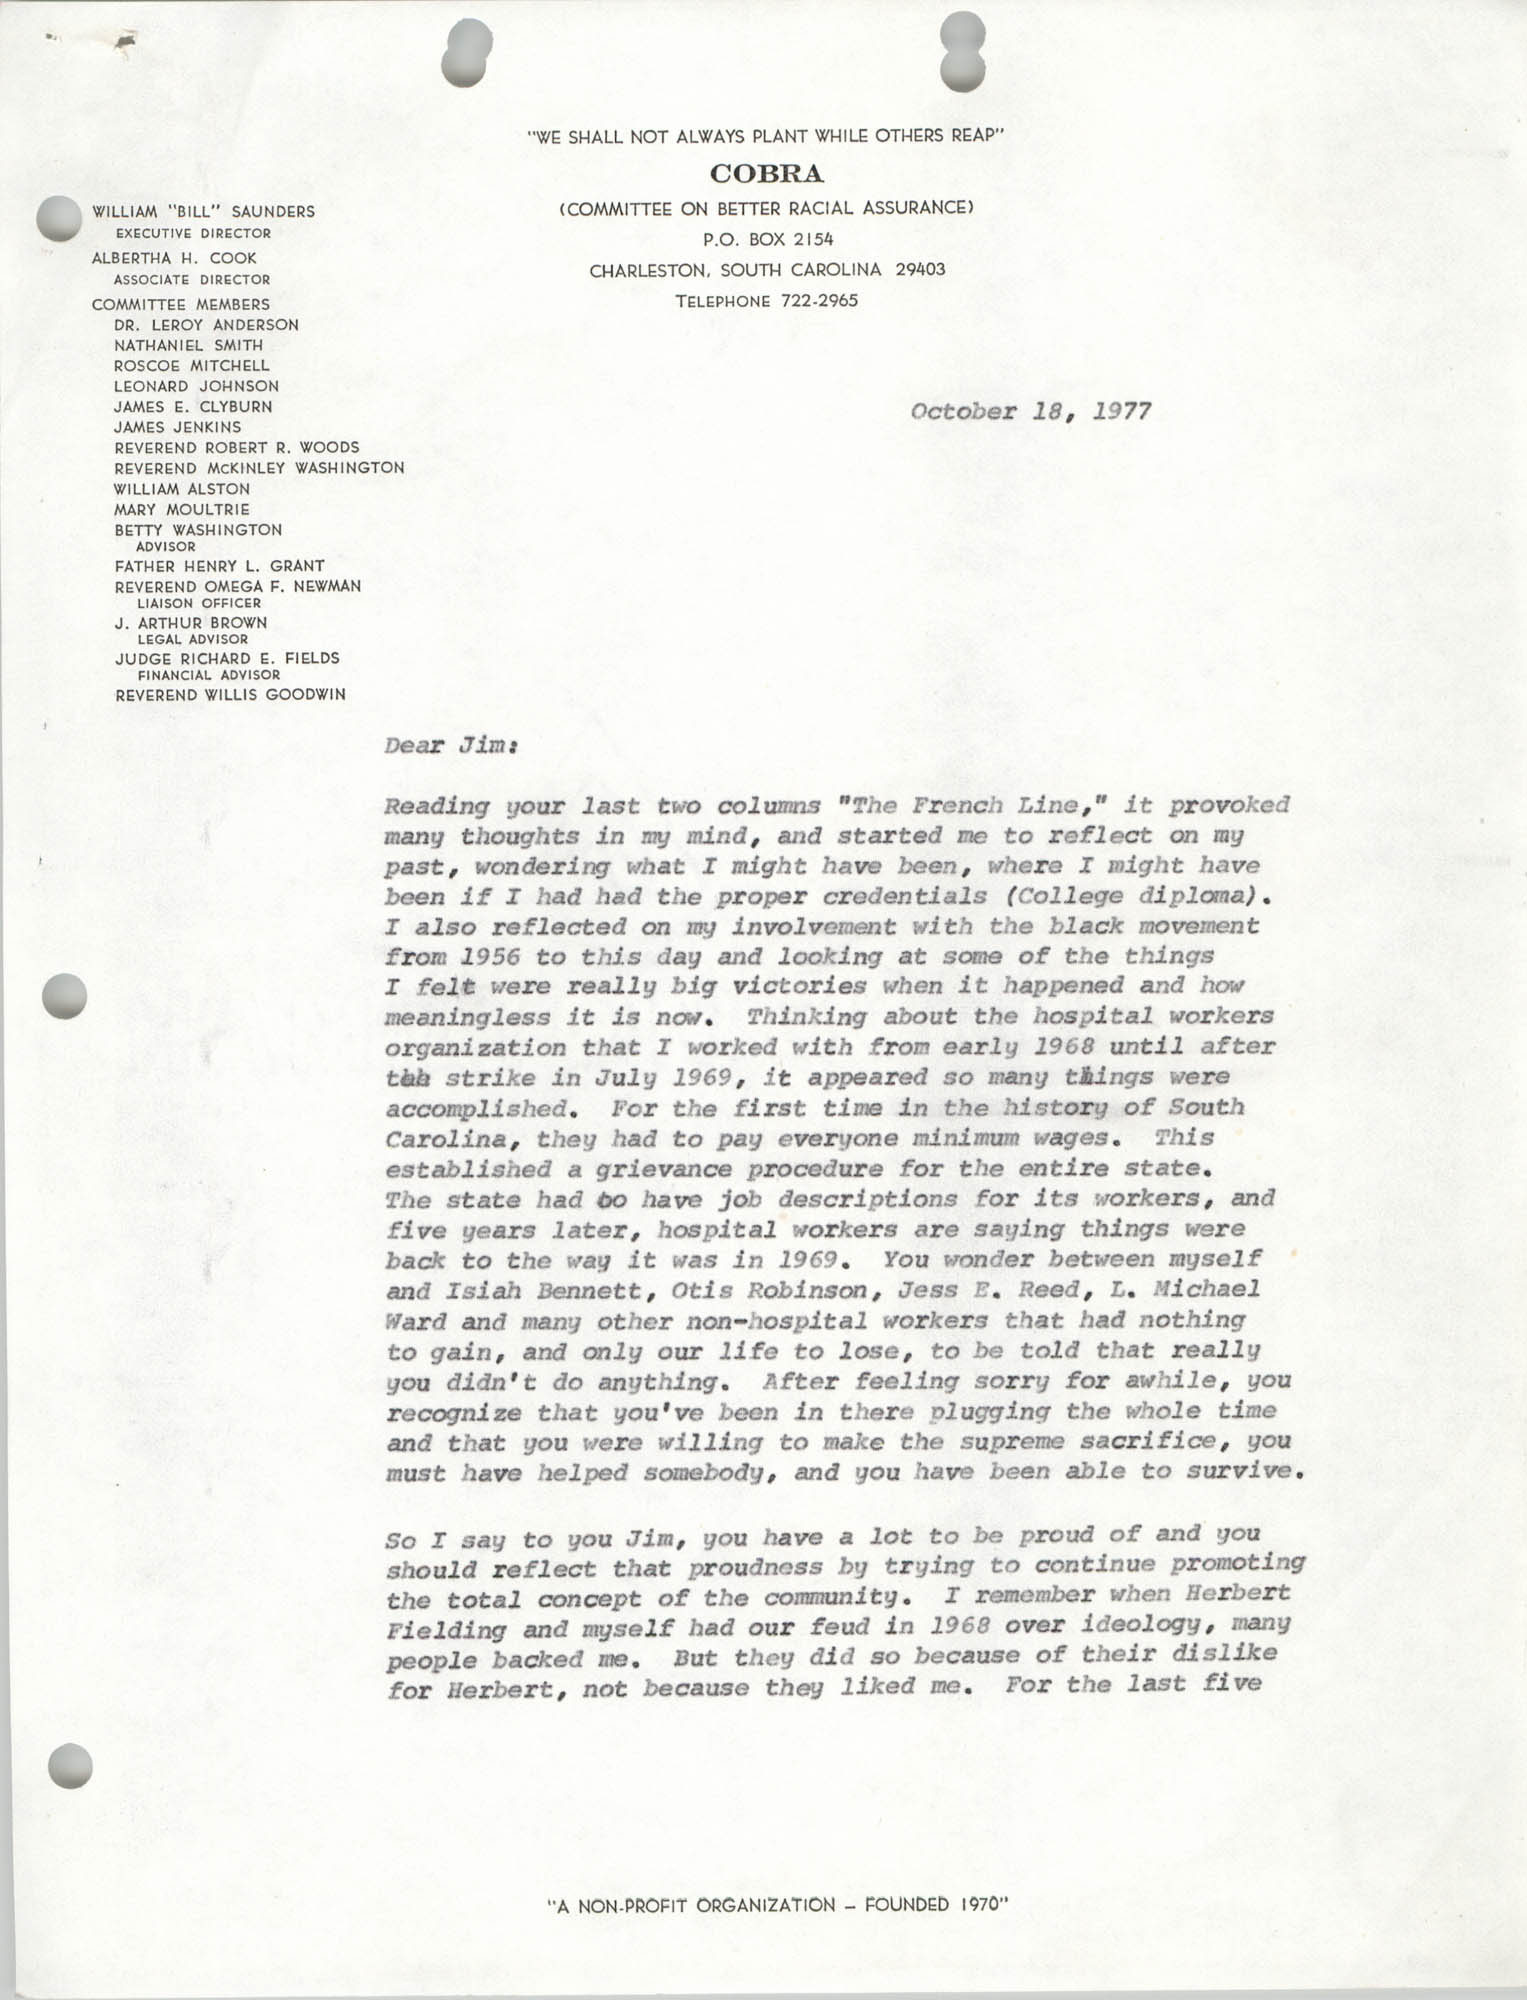 Letter from William Saunders, October 18, 1977